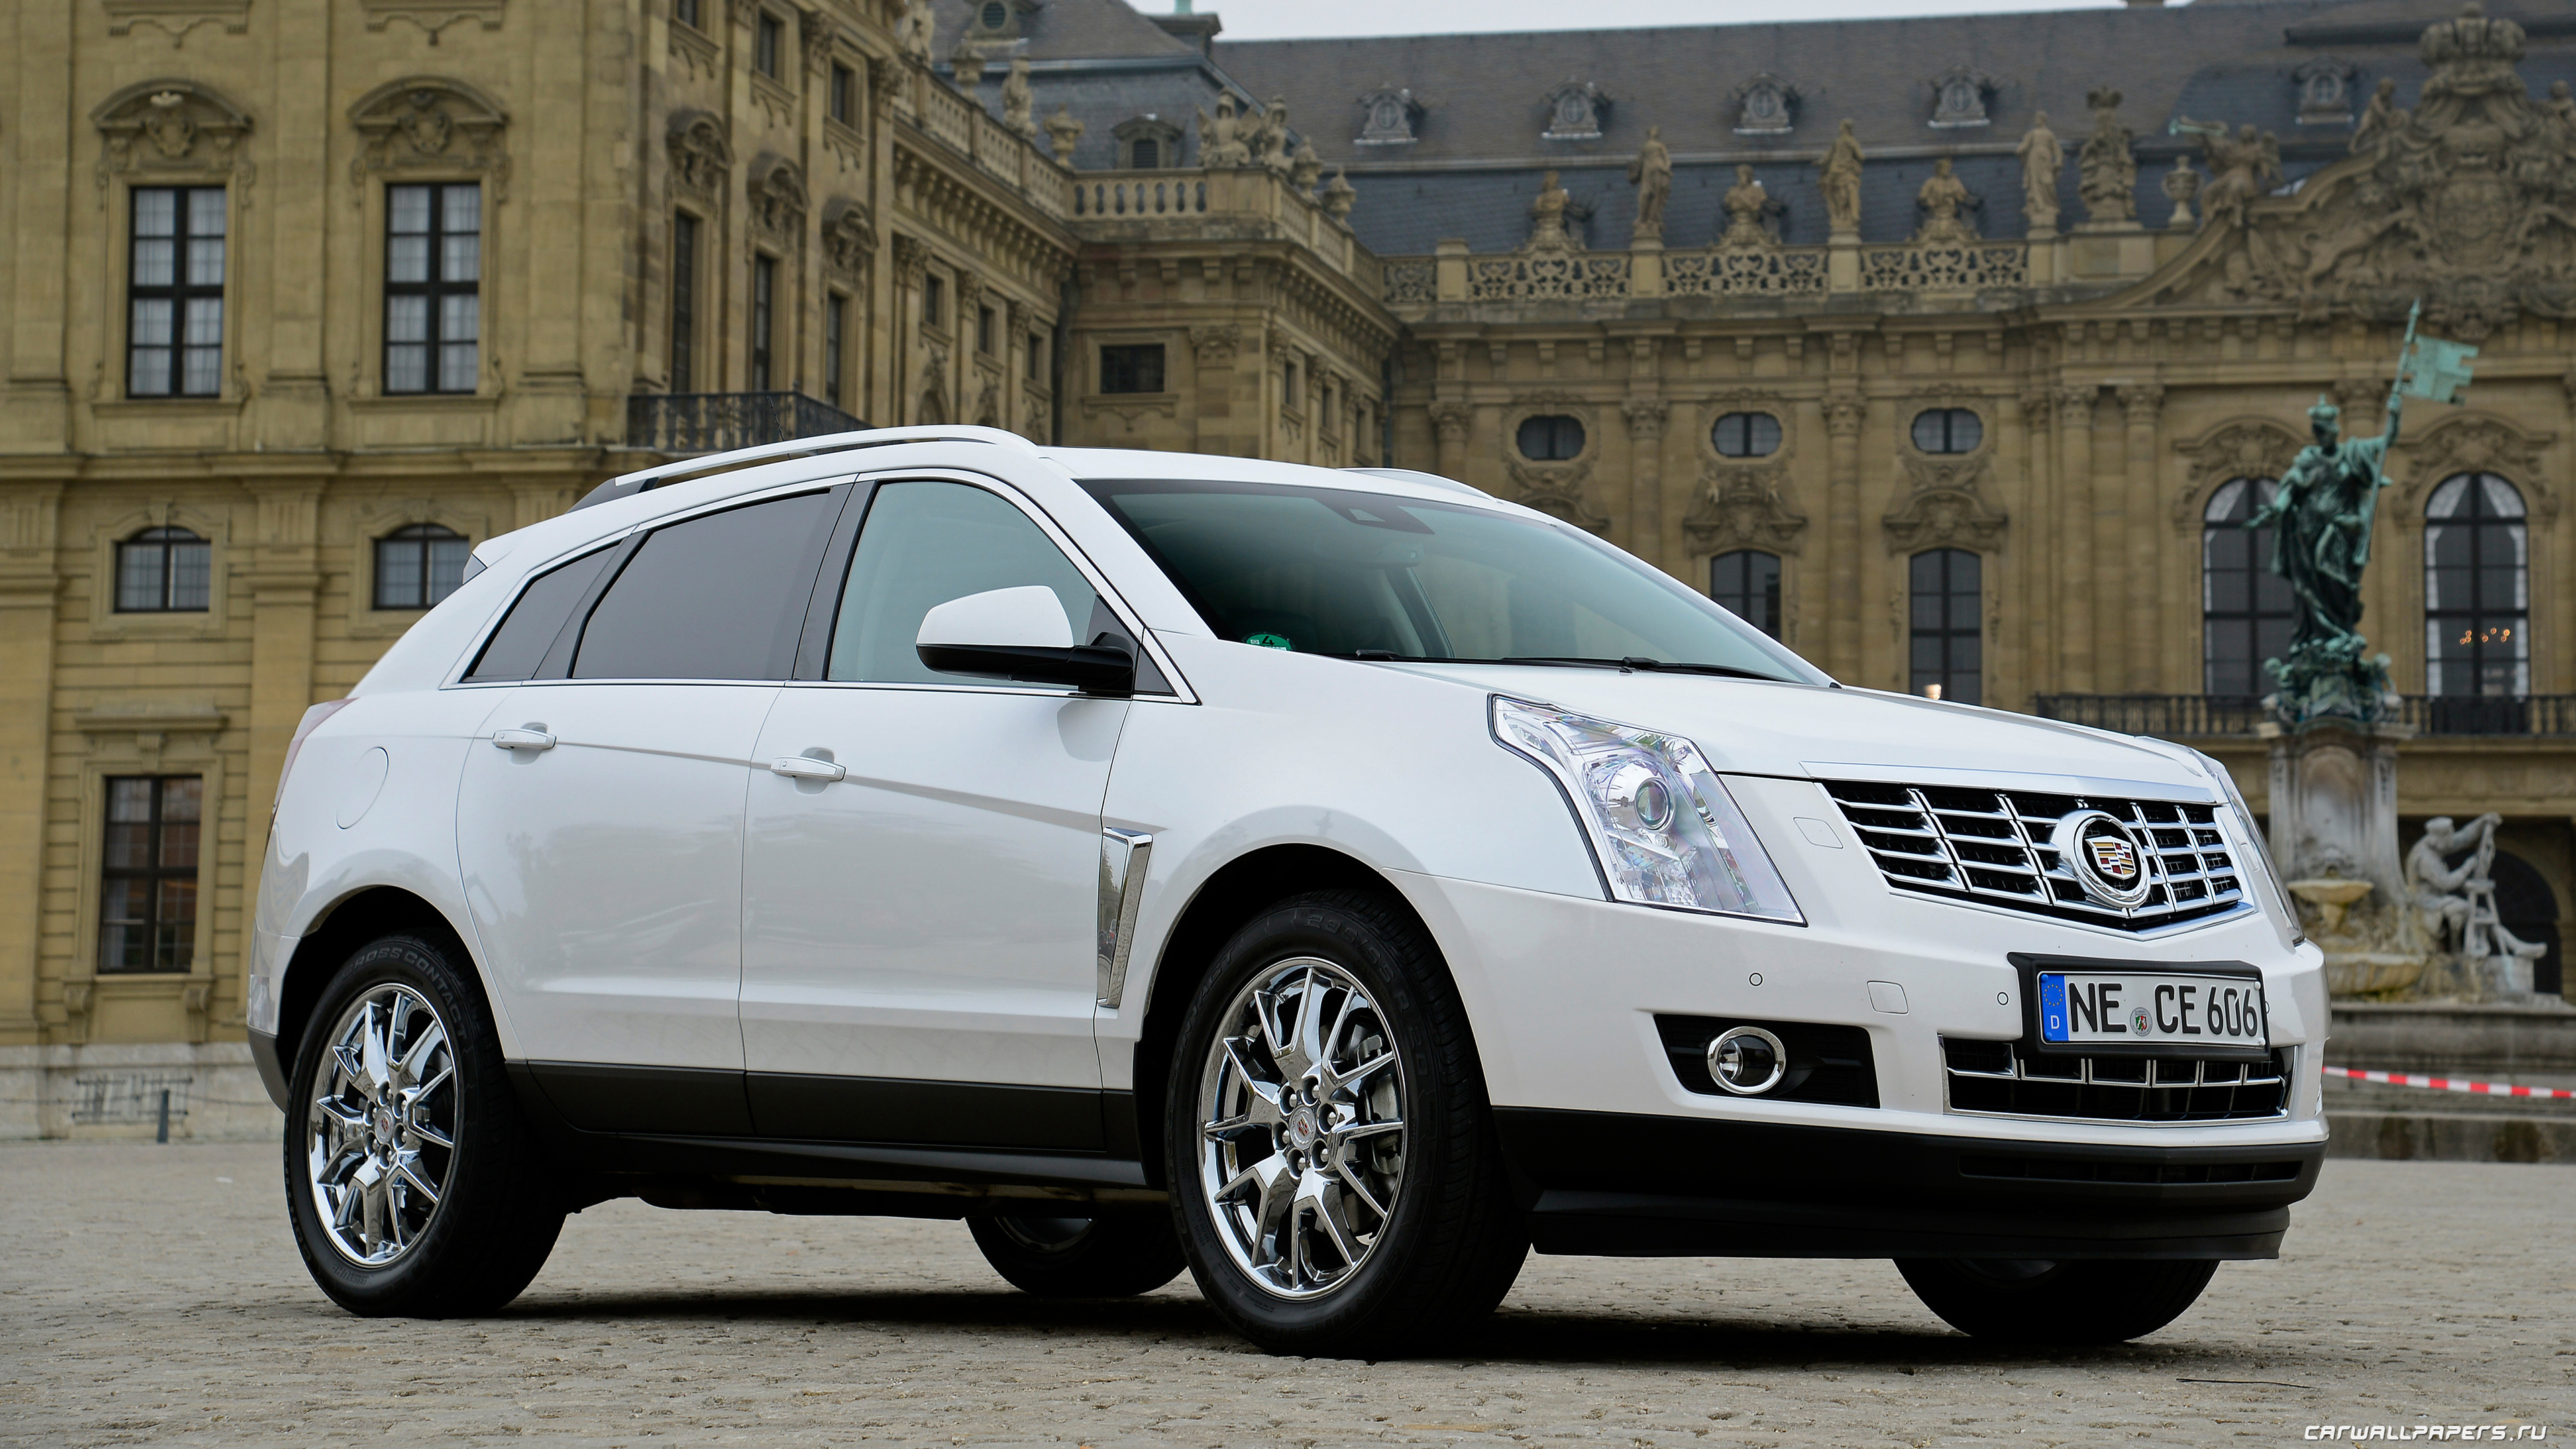 york auto revealed new cadillac srx before show blog gm refreshed